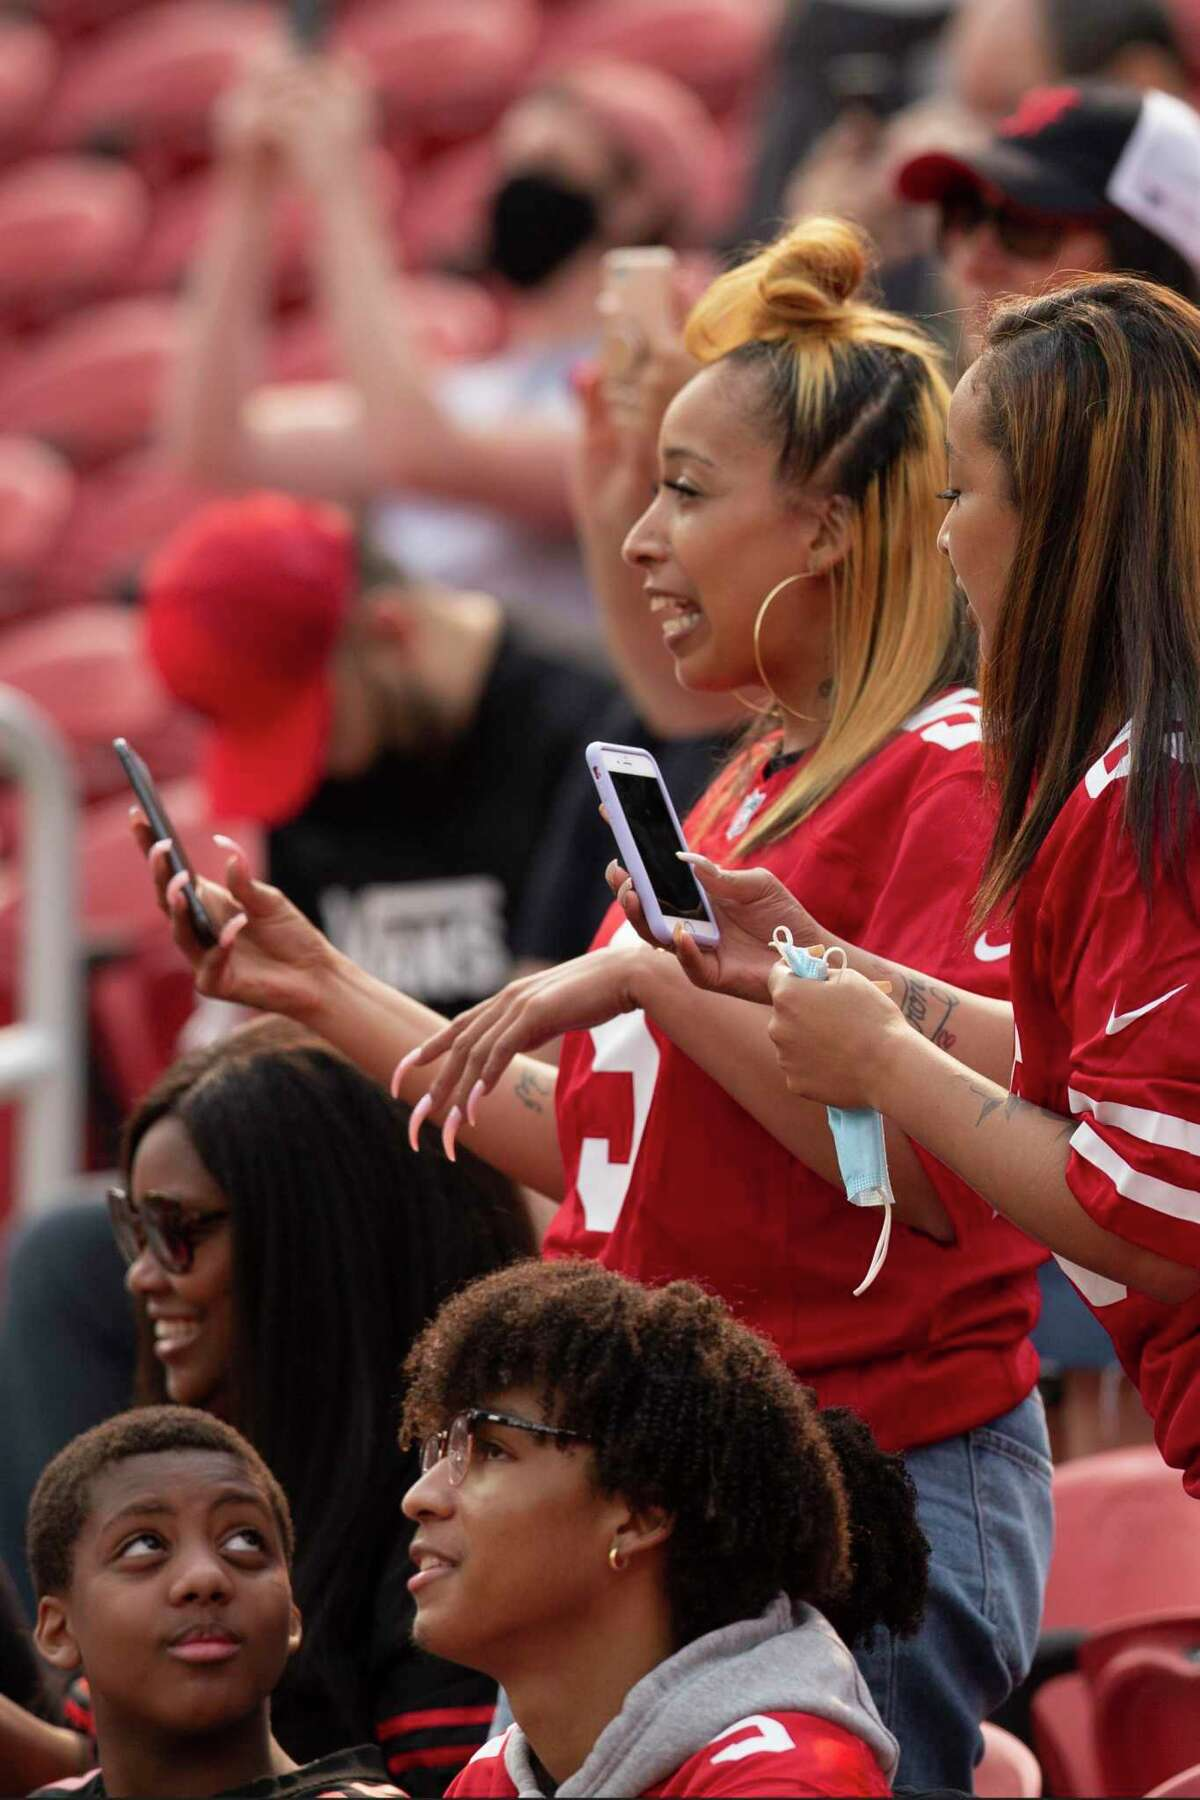 San Francisco 49ers fans arrive at Levi's Stadium for an NFL football open practice, Saturday, Aug. 7, 2021, in Santa Clara, Calif. Fans were allowed back inside Levi's Stadium for the first time since the onset of the COVID-19 pandemic. (AP Photo/D. Ross Cameron)